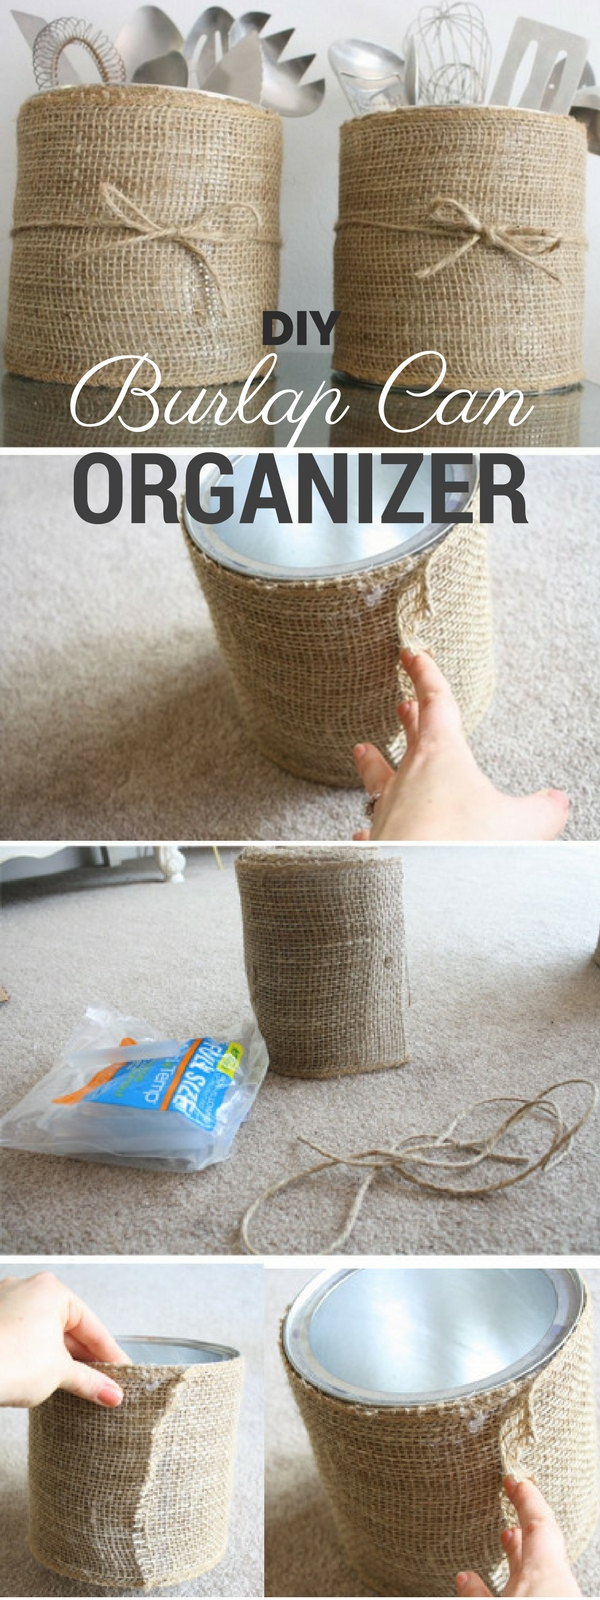 Check out the tutorial: #DIY Burlap Can Organizer